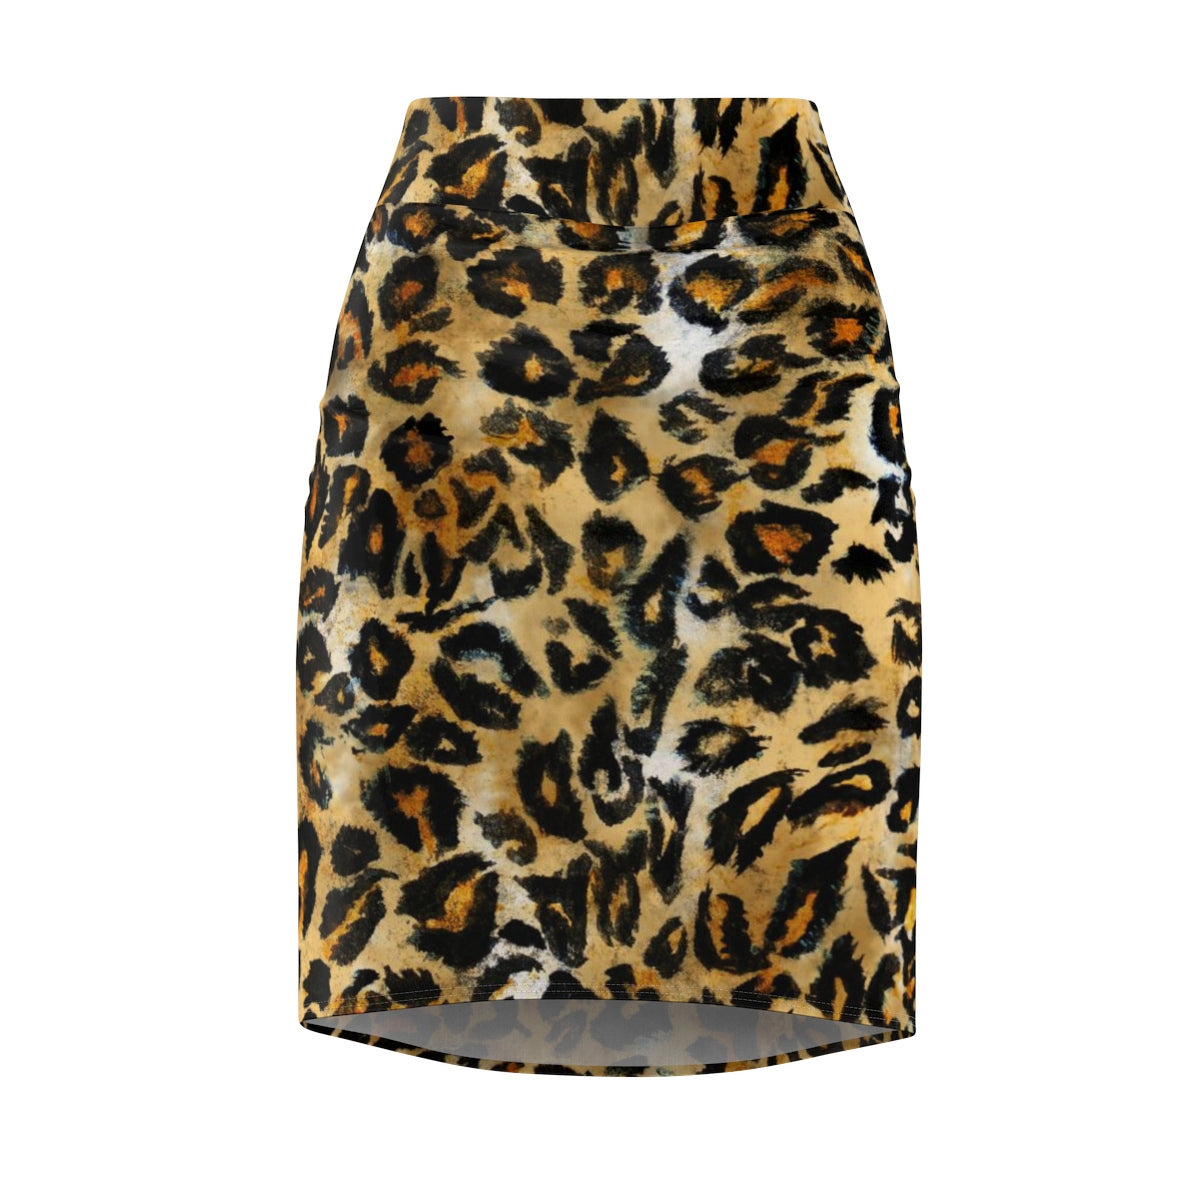 Leopard Print Women's Pencil Skirt, Animal Print Designer Skirt -Made in USA(Size XS-2XL)-Pencil Skirt-L-Heidi Kimura Art LLC